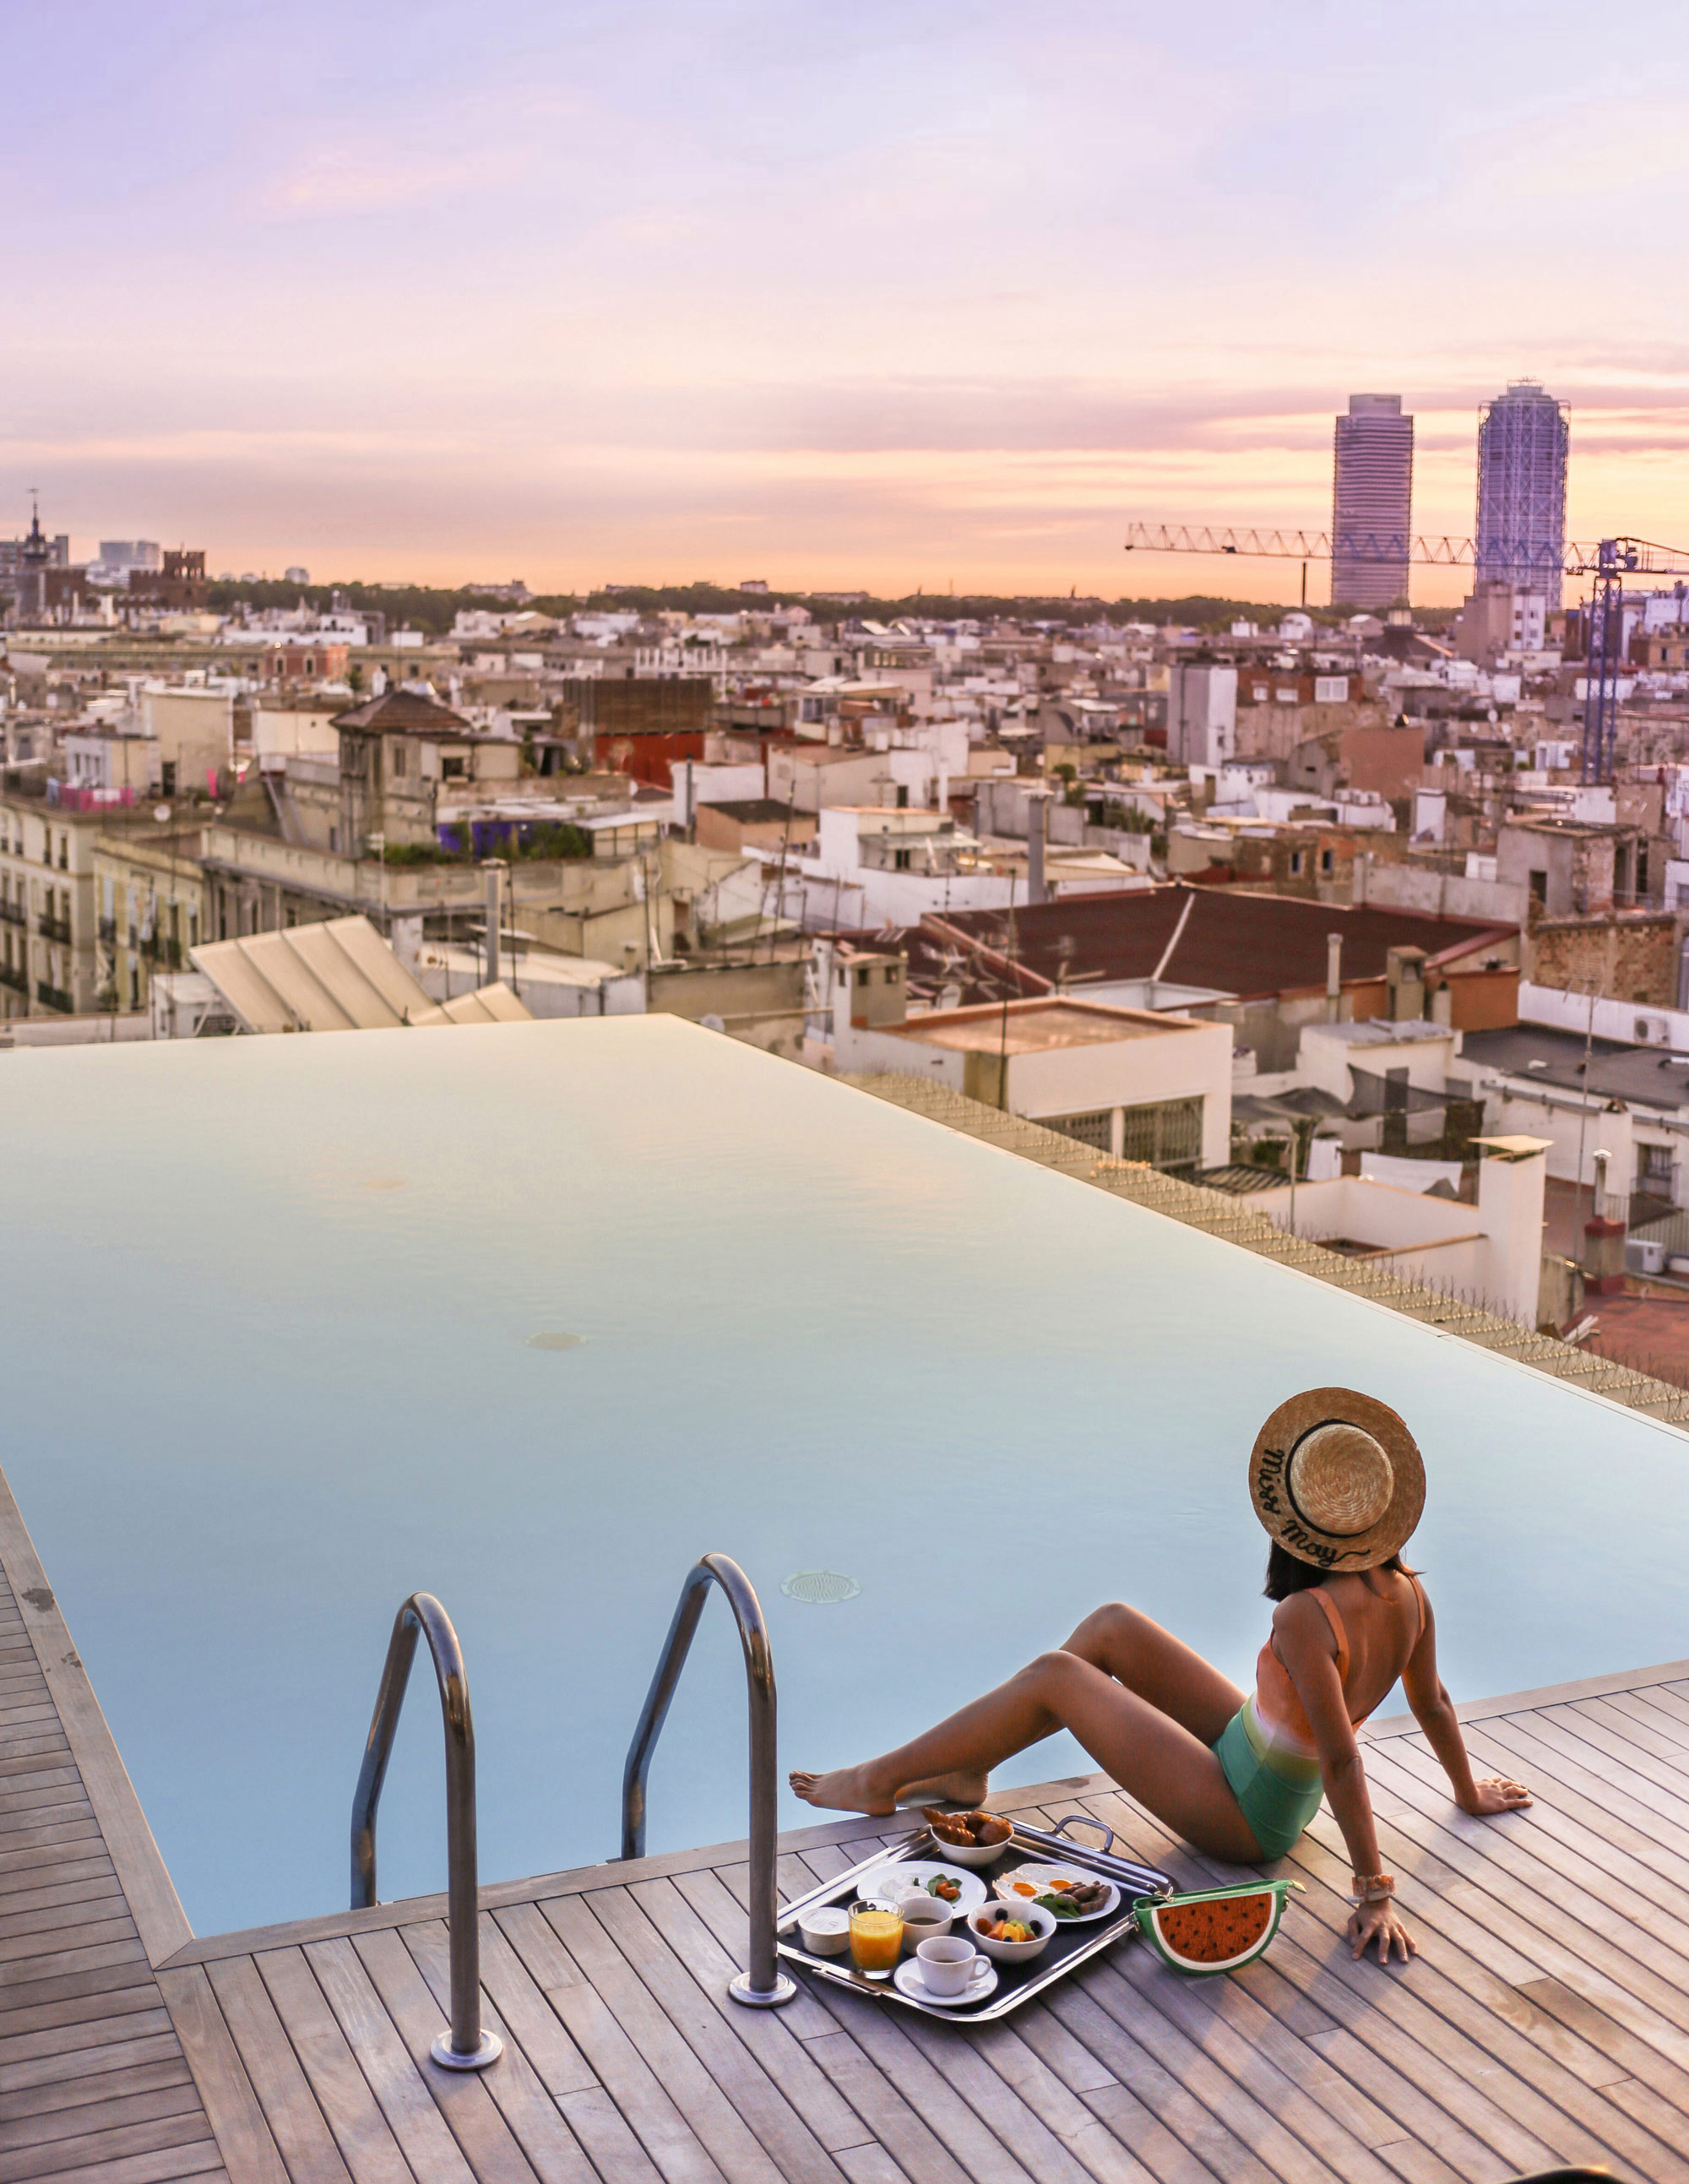 Honestly, the best roof top pool view of Barcelona. I could stay up here all day. Photo by Leon Korobacz of @hungrysydneysiders.